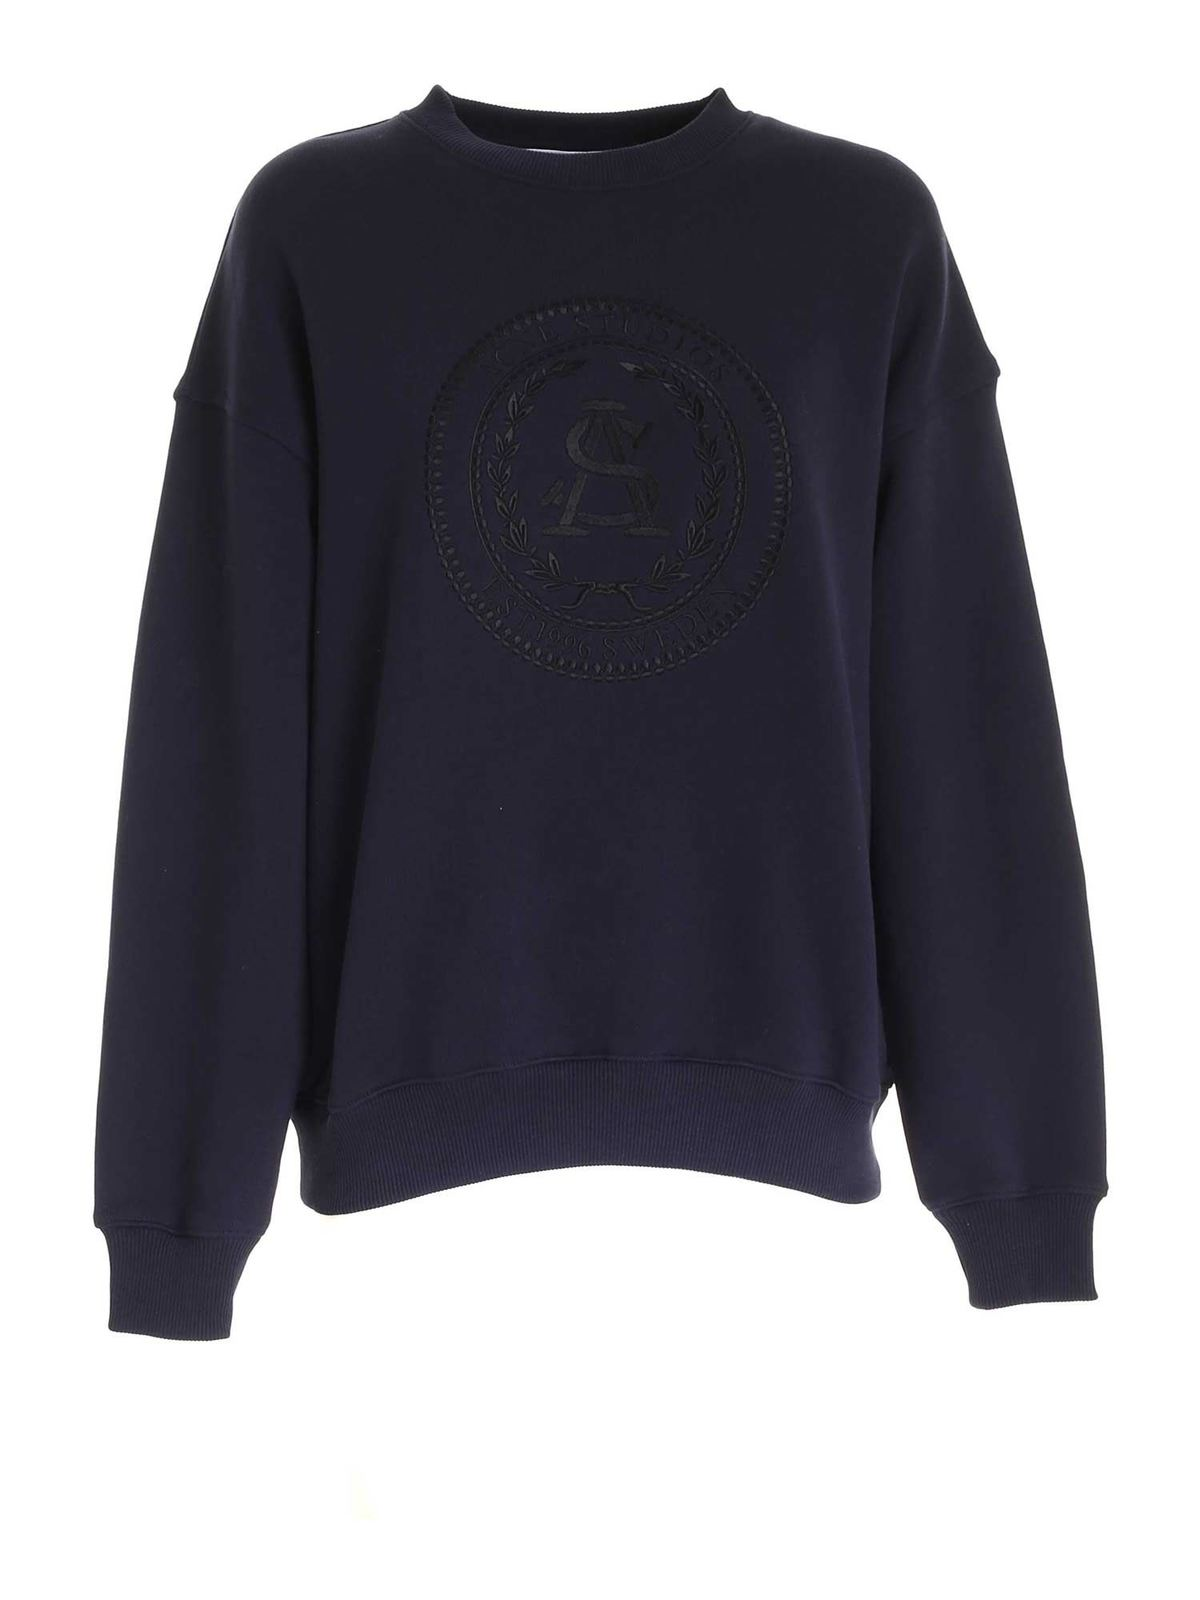 ACNE STUDIOS EMBROIDERED CREWNECK SWEATSHIRT IN BLUE